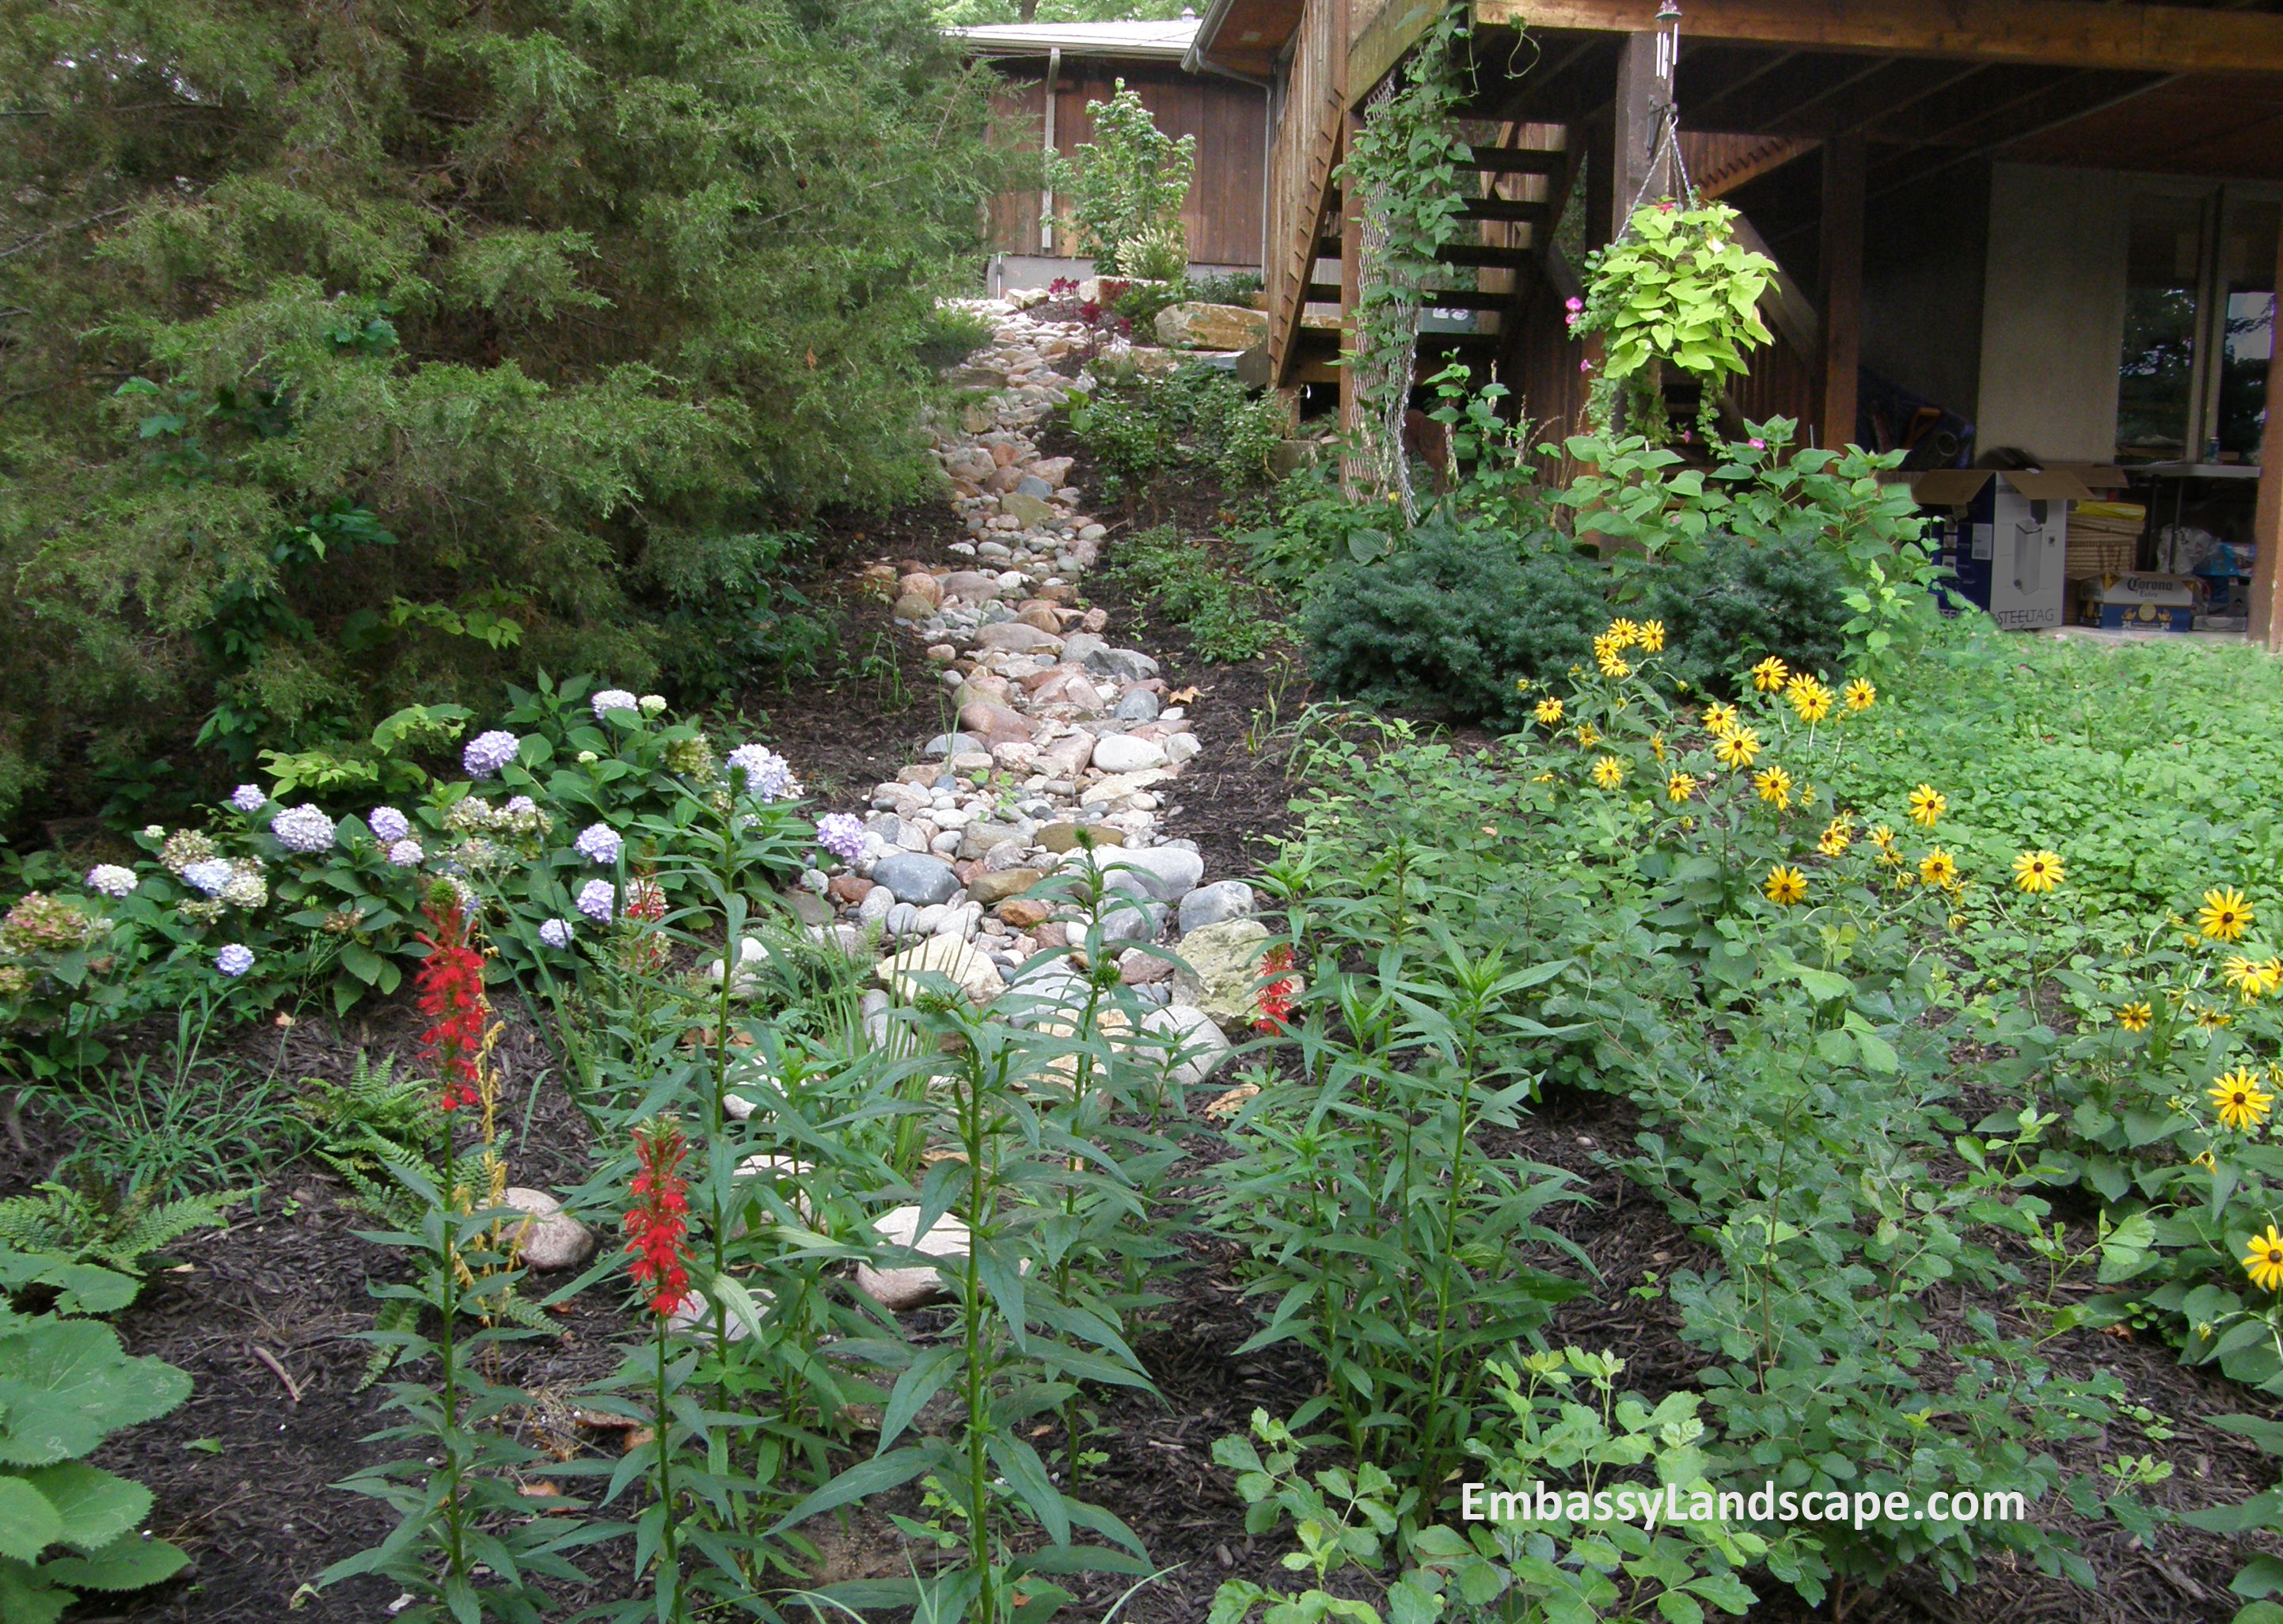 Native plants require fewer chemical applications, helping to protect our water system.